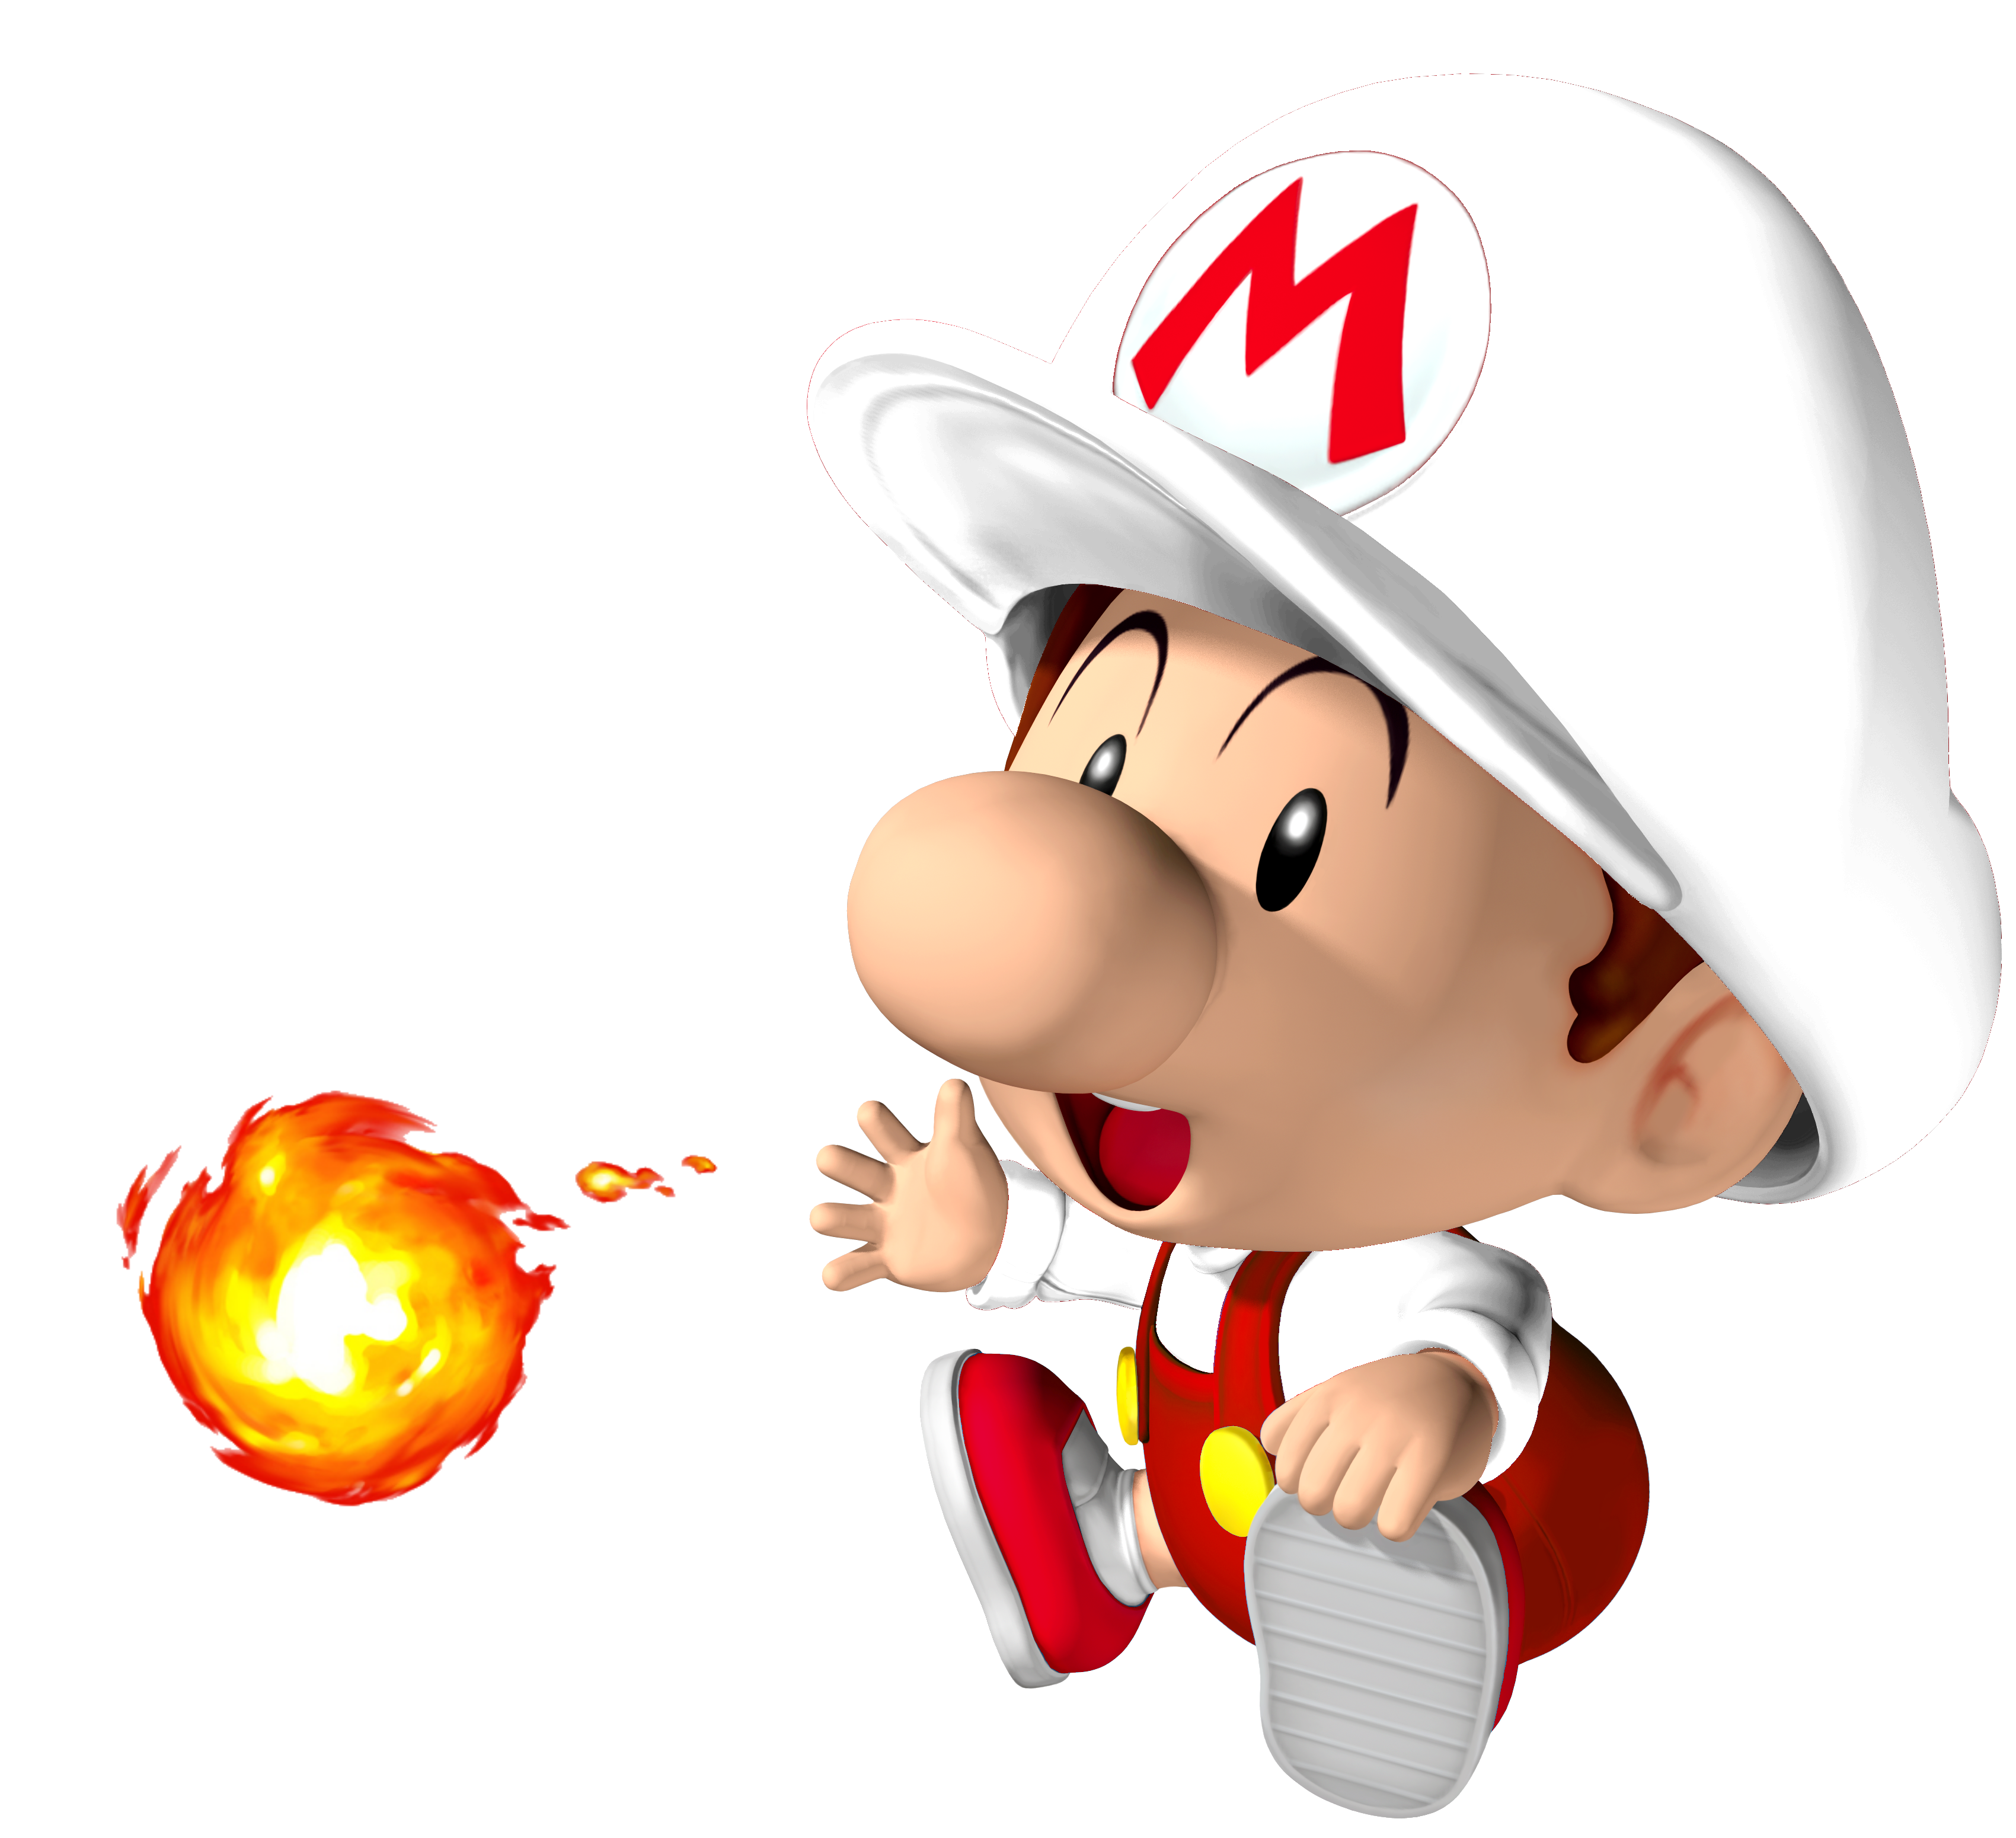 filefire baby mario smg3png